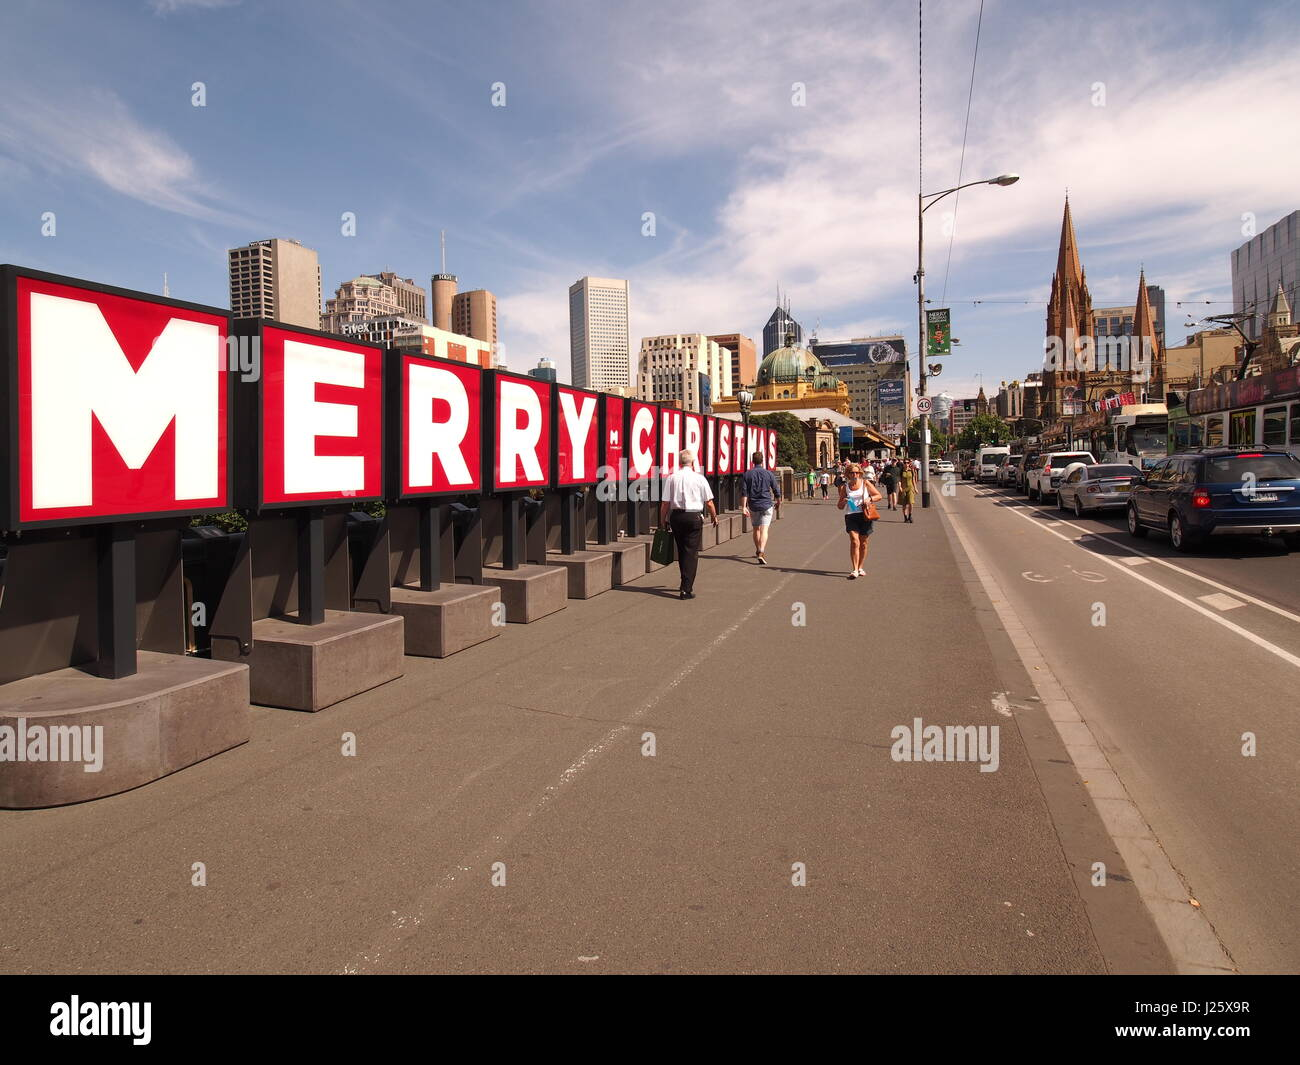 Melbourne, Australia - December 22 , 2015: Christmas wording in big letters on boards near Flinders Street Station - Stock Image